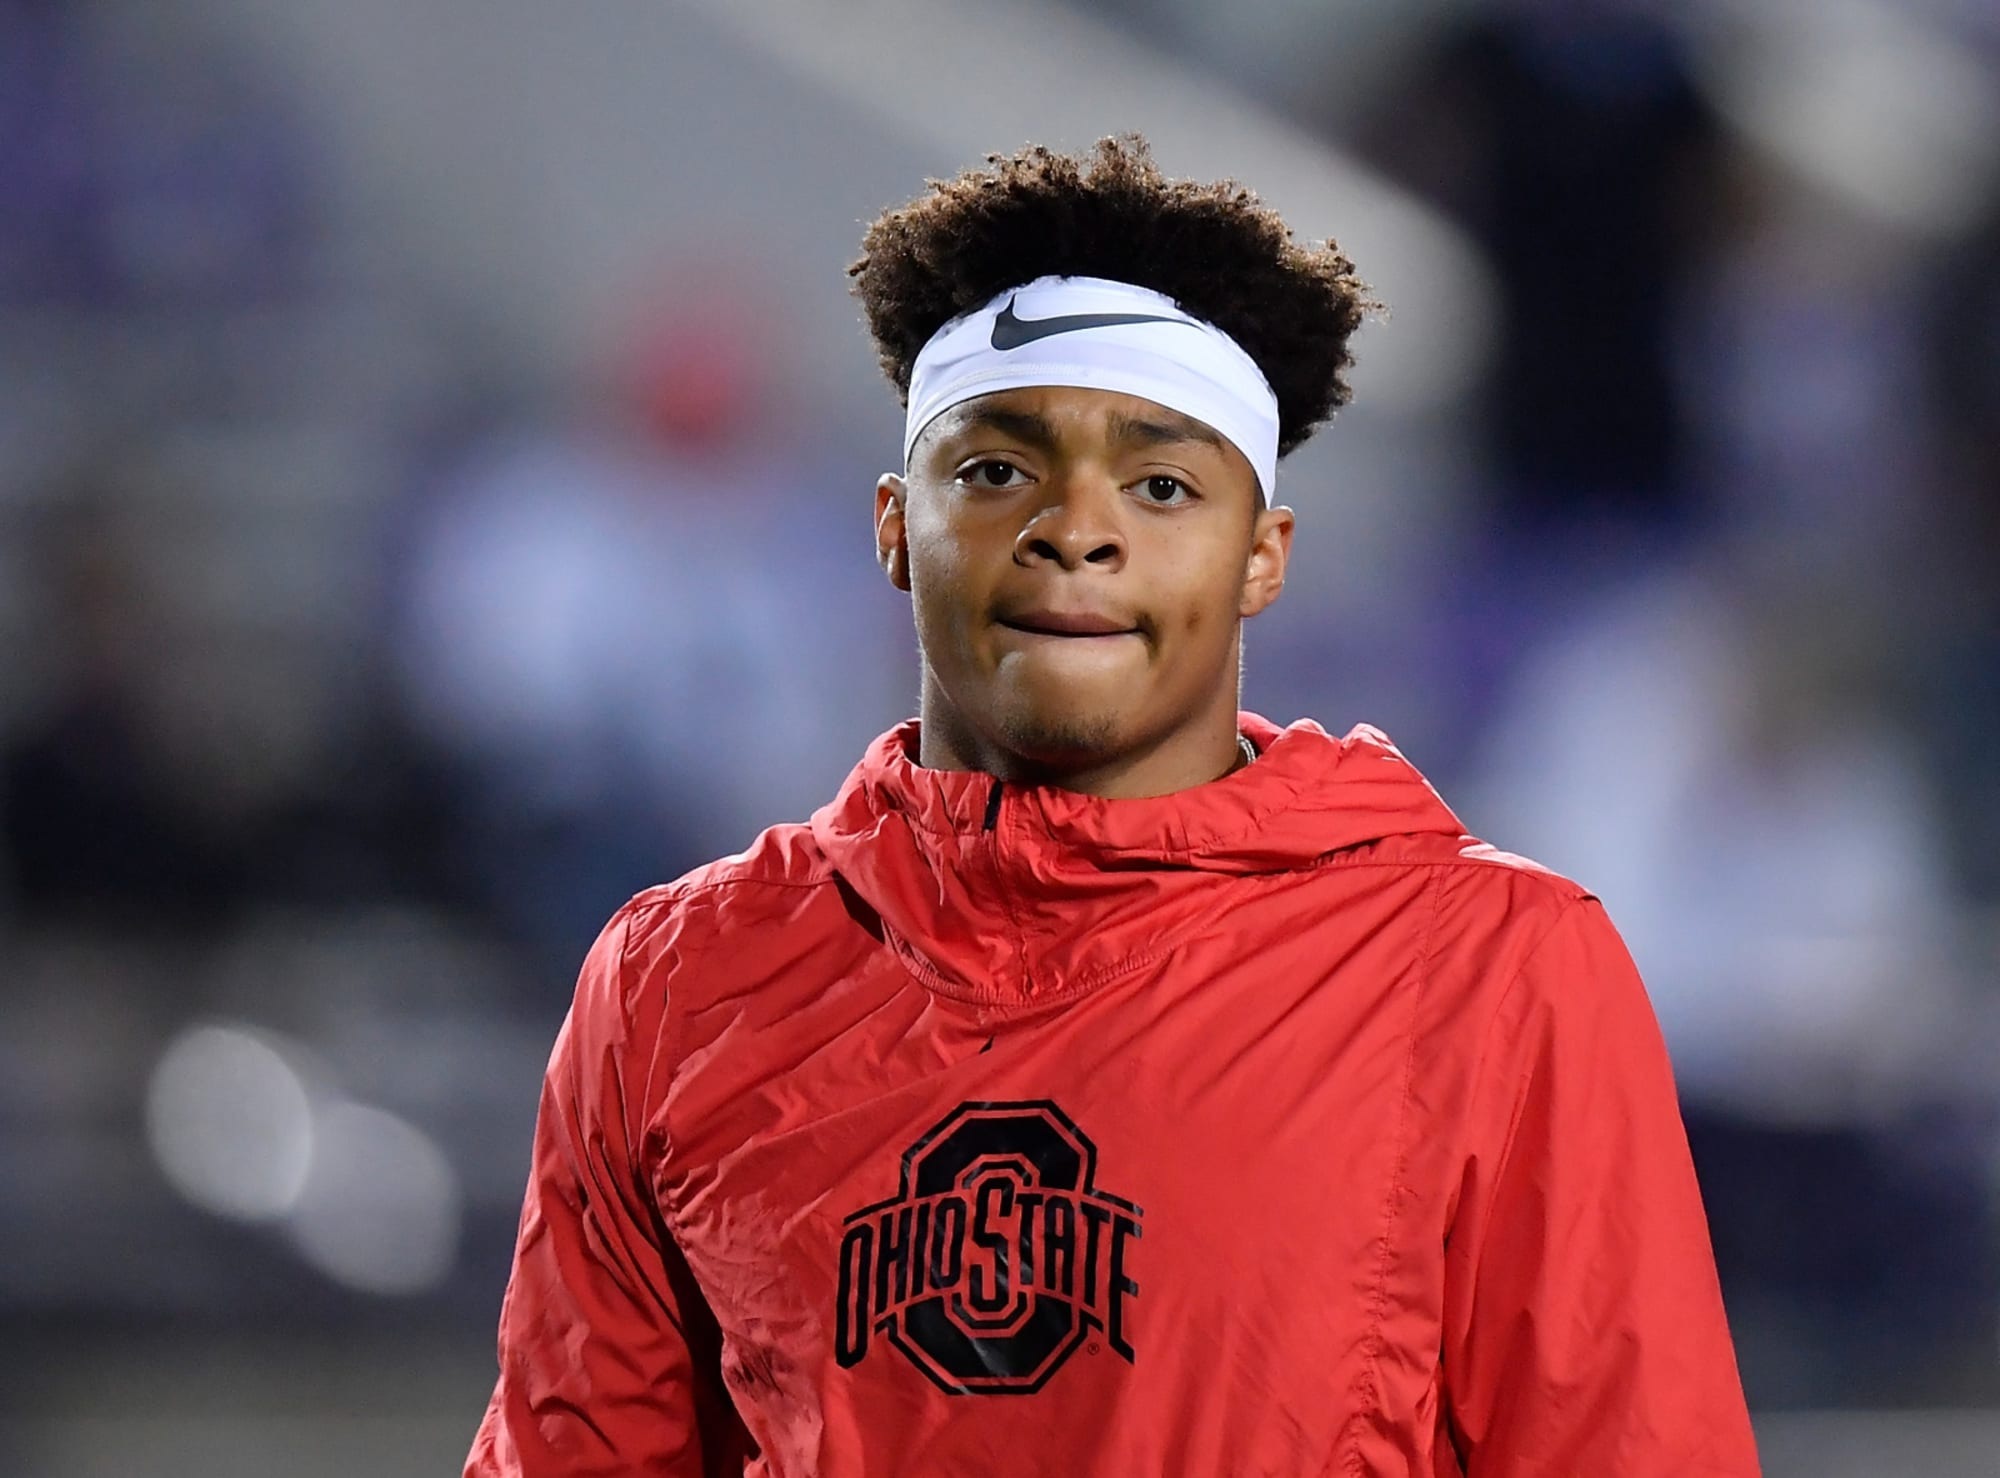 Carolina Panthers Draft Is Justin Fields The Best QB In Class